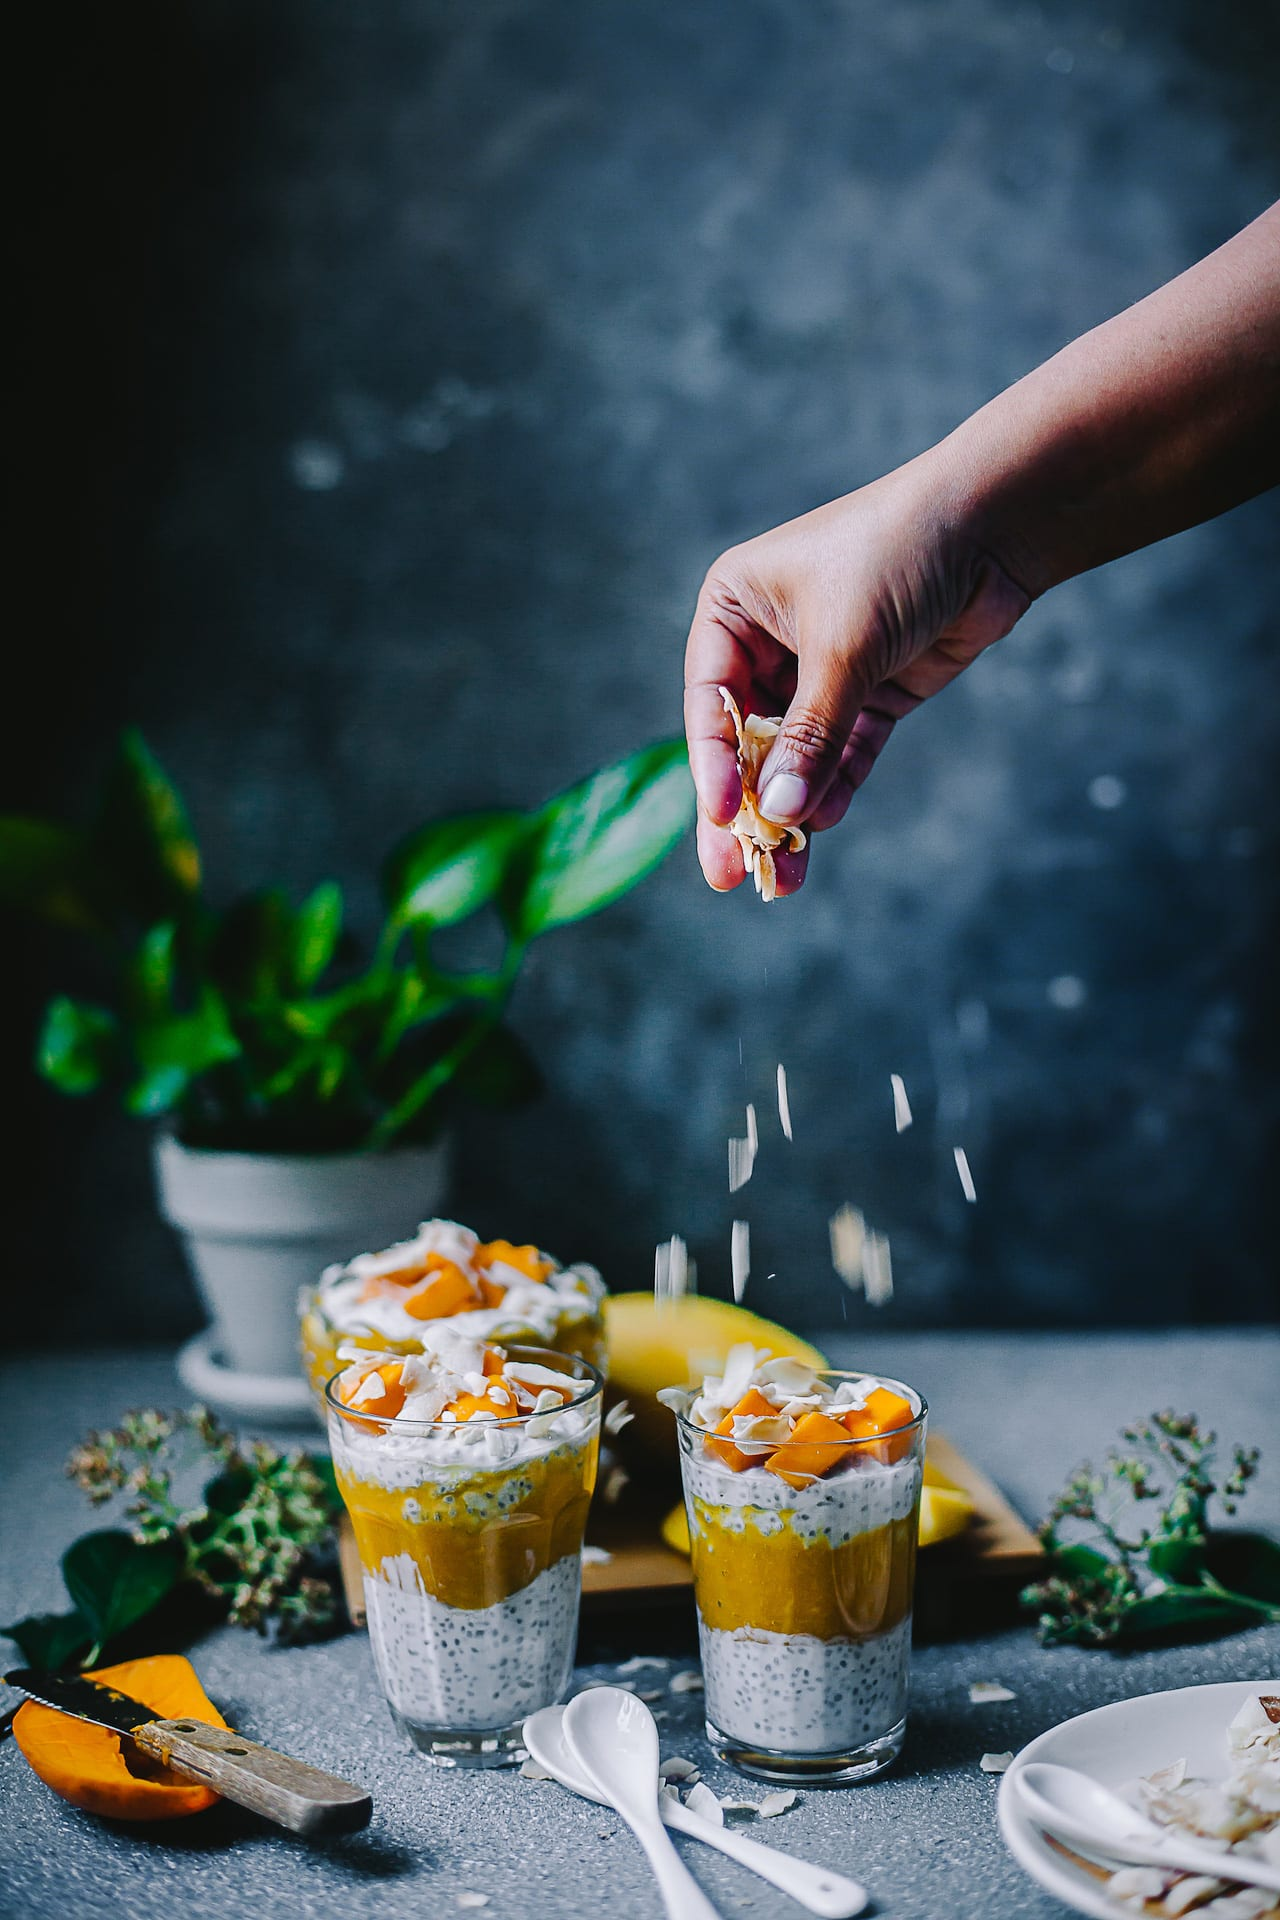 Chia Coconut Mango Pudding | Playful Cooking #chia #mango #breakfast #pudding #coconut